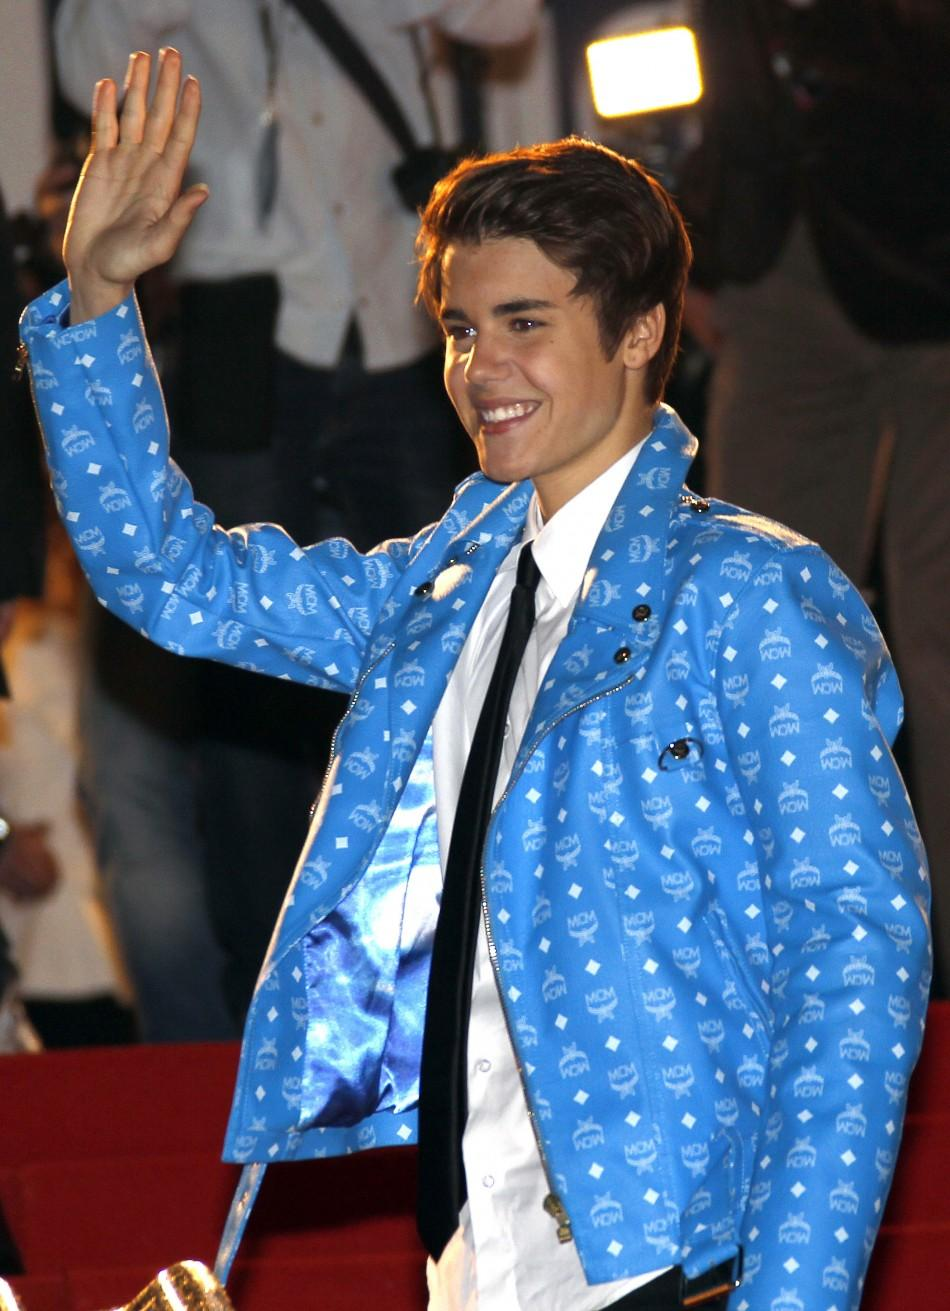 Canadian singer Justin Bieber waves as he arrives at the Cannes festival palace to attend the NRJ Music Awards in Cannes January 28, 2012.